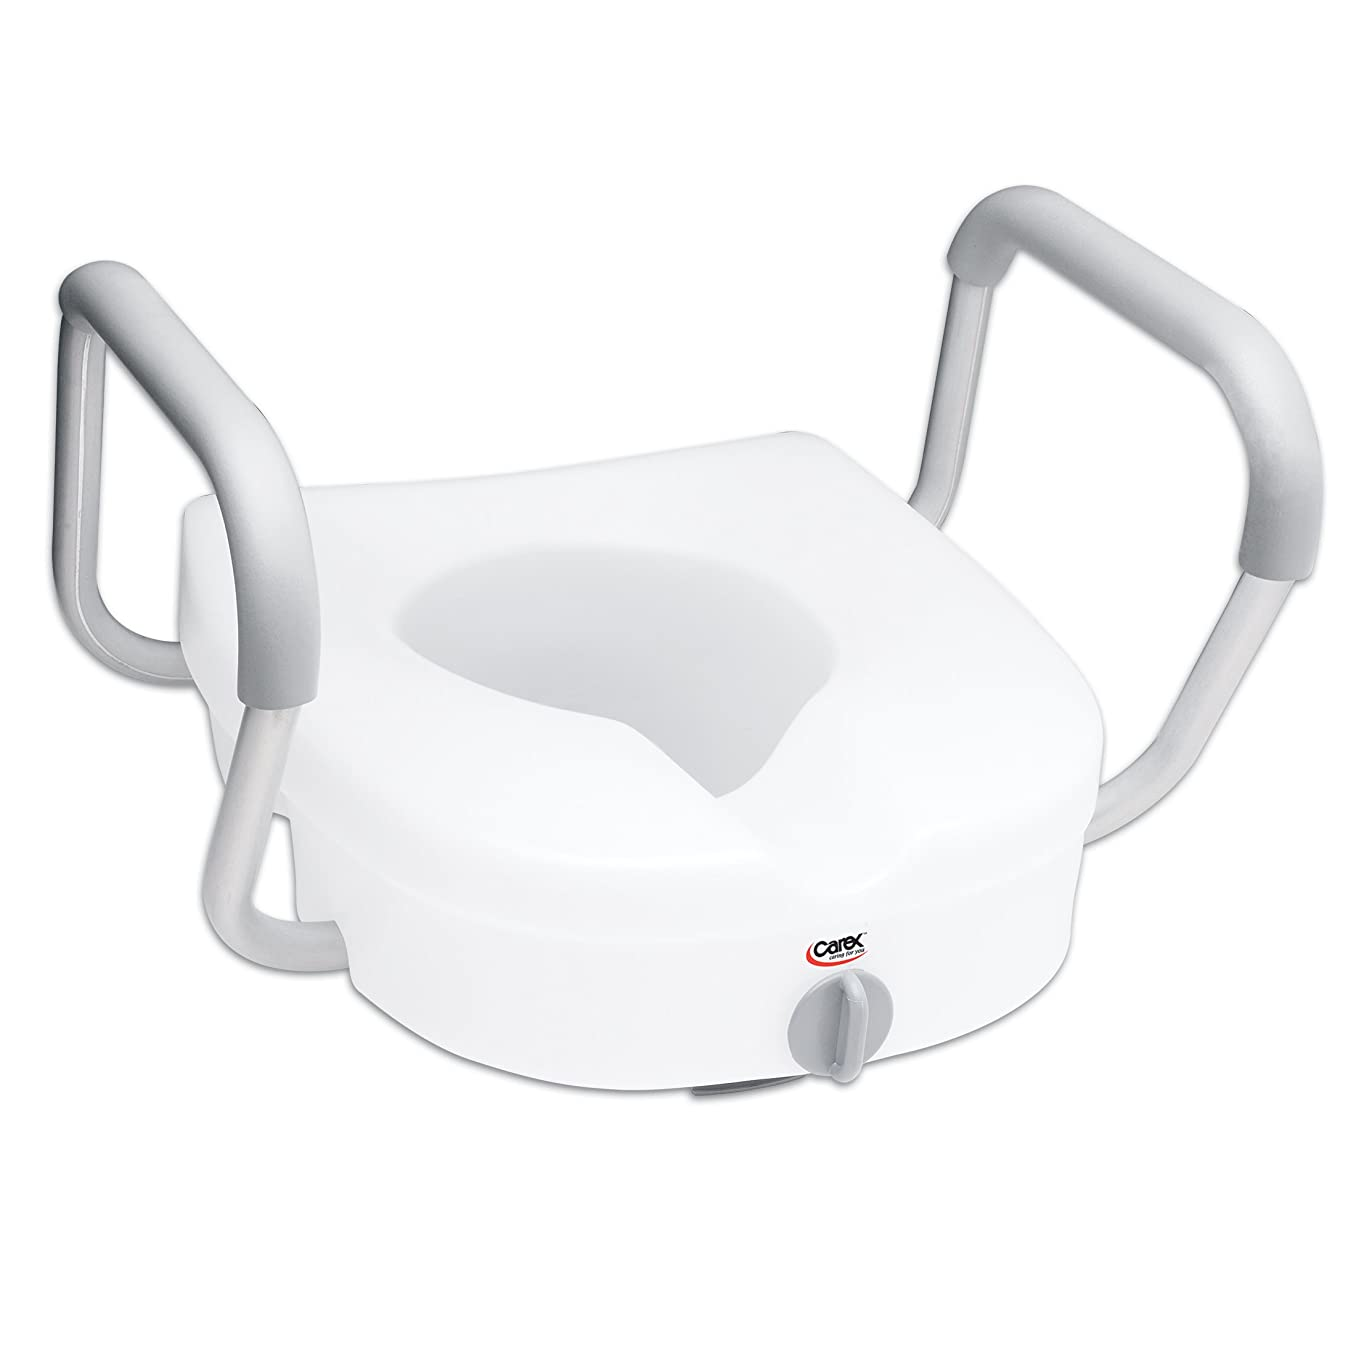 Carex E-Z Lock Raised Toilet Seat with Handles - 5 Inch Toilet Seat Riser with Arms - Fits Most Toilets